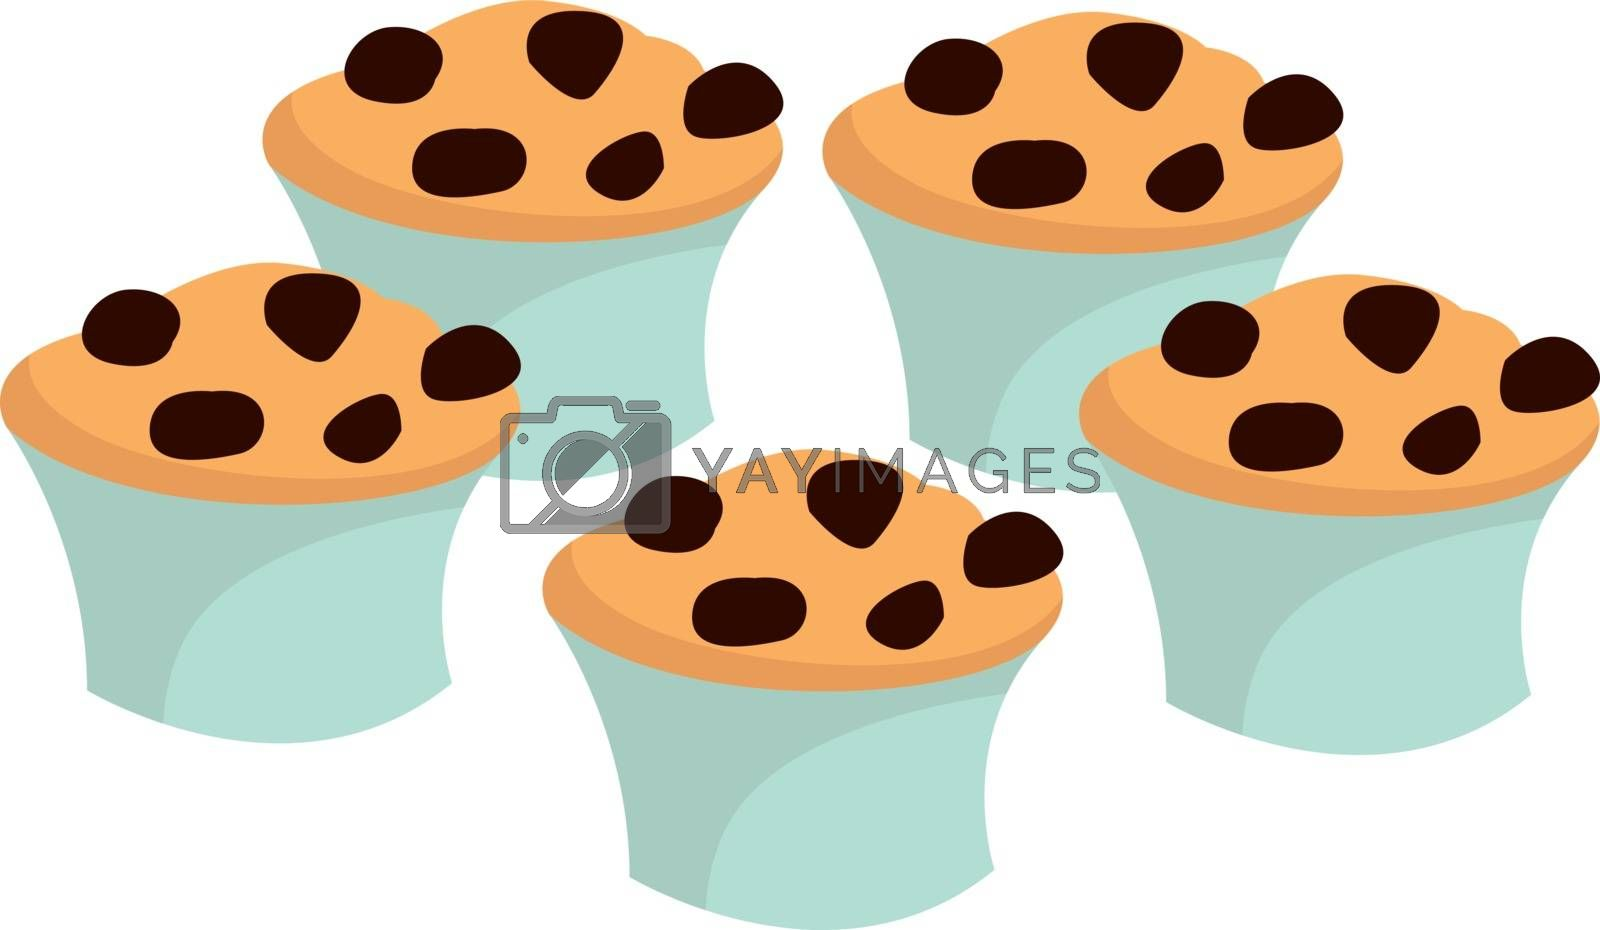 Cupcakes, illustration, vector on white background.